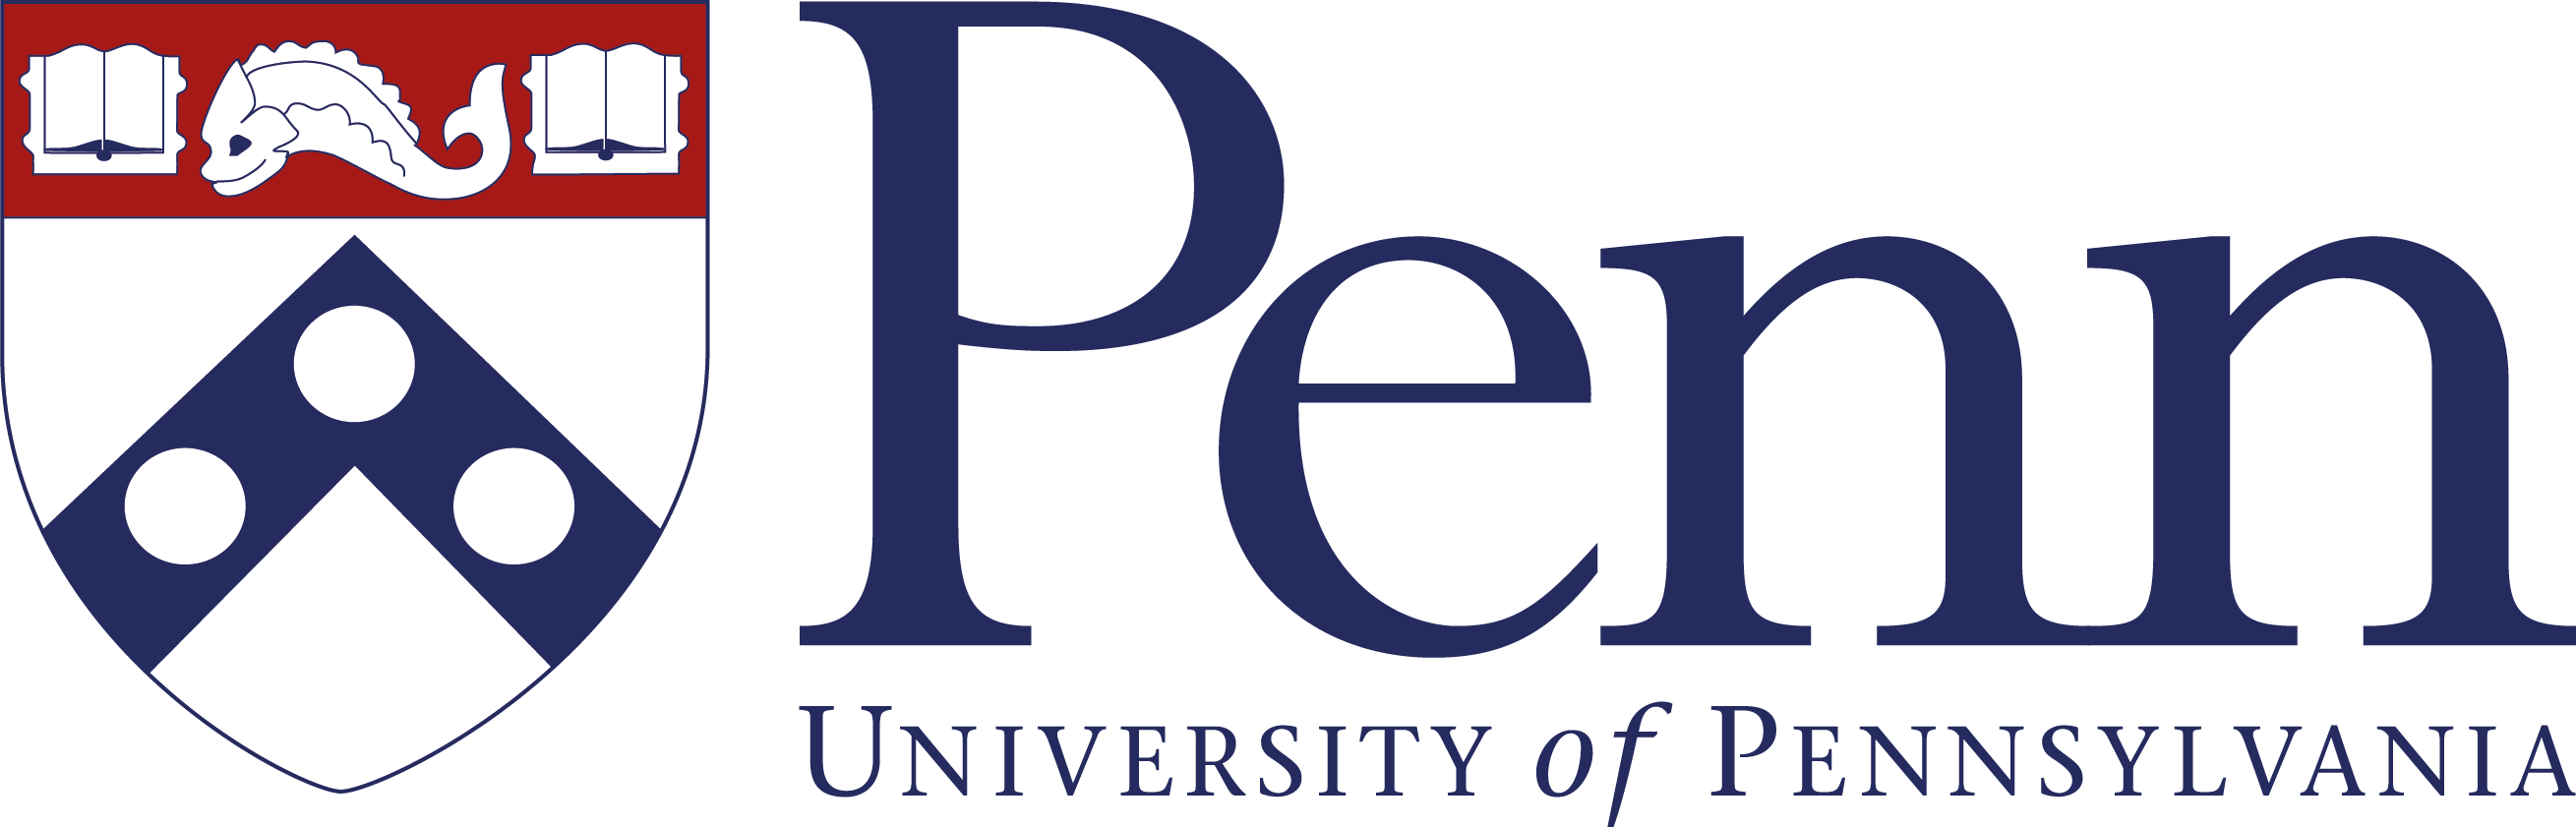 Penn Logo University of Pennsylvania